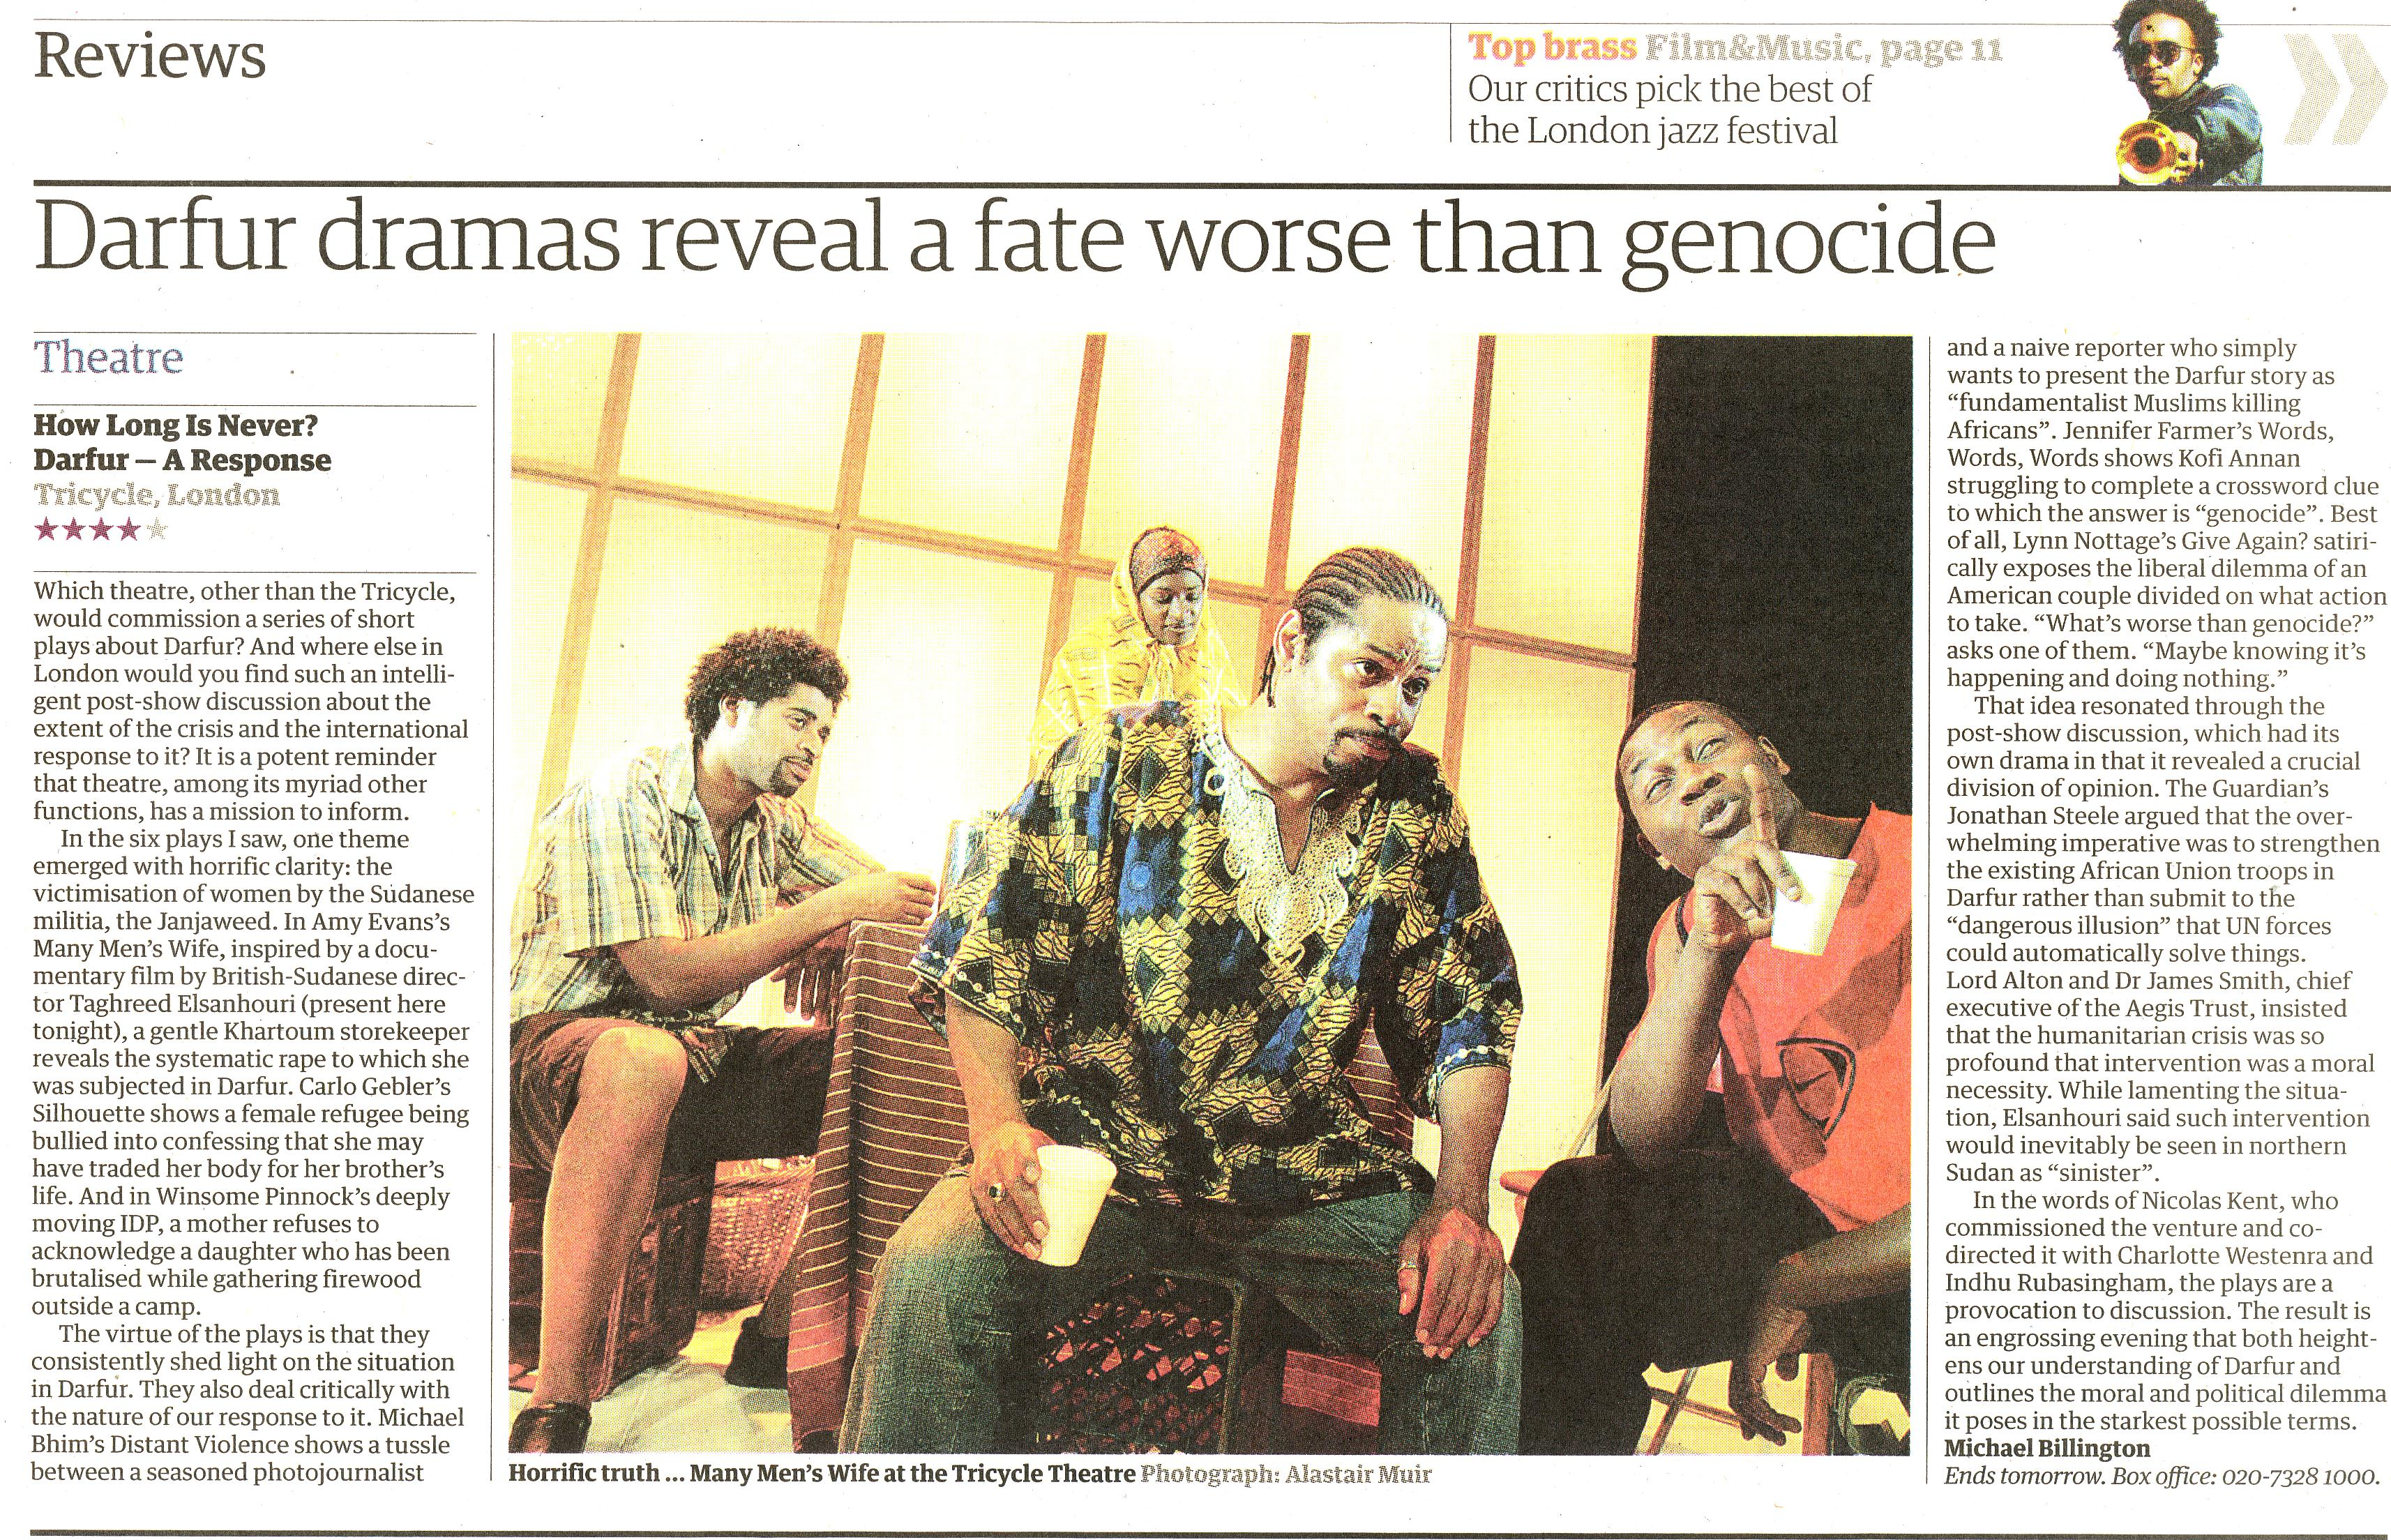 The Guardian, 27 October 2006